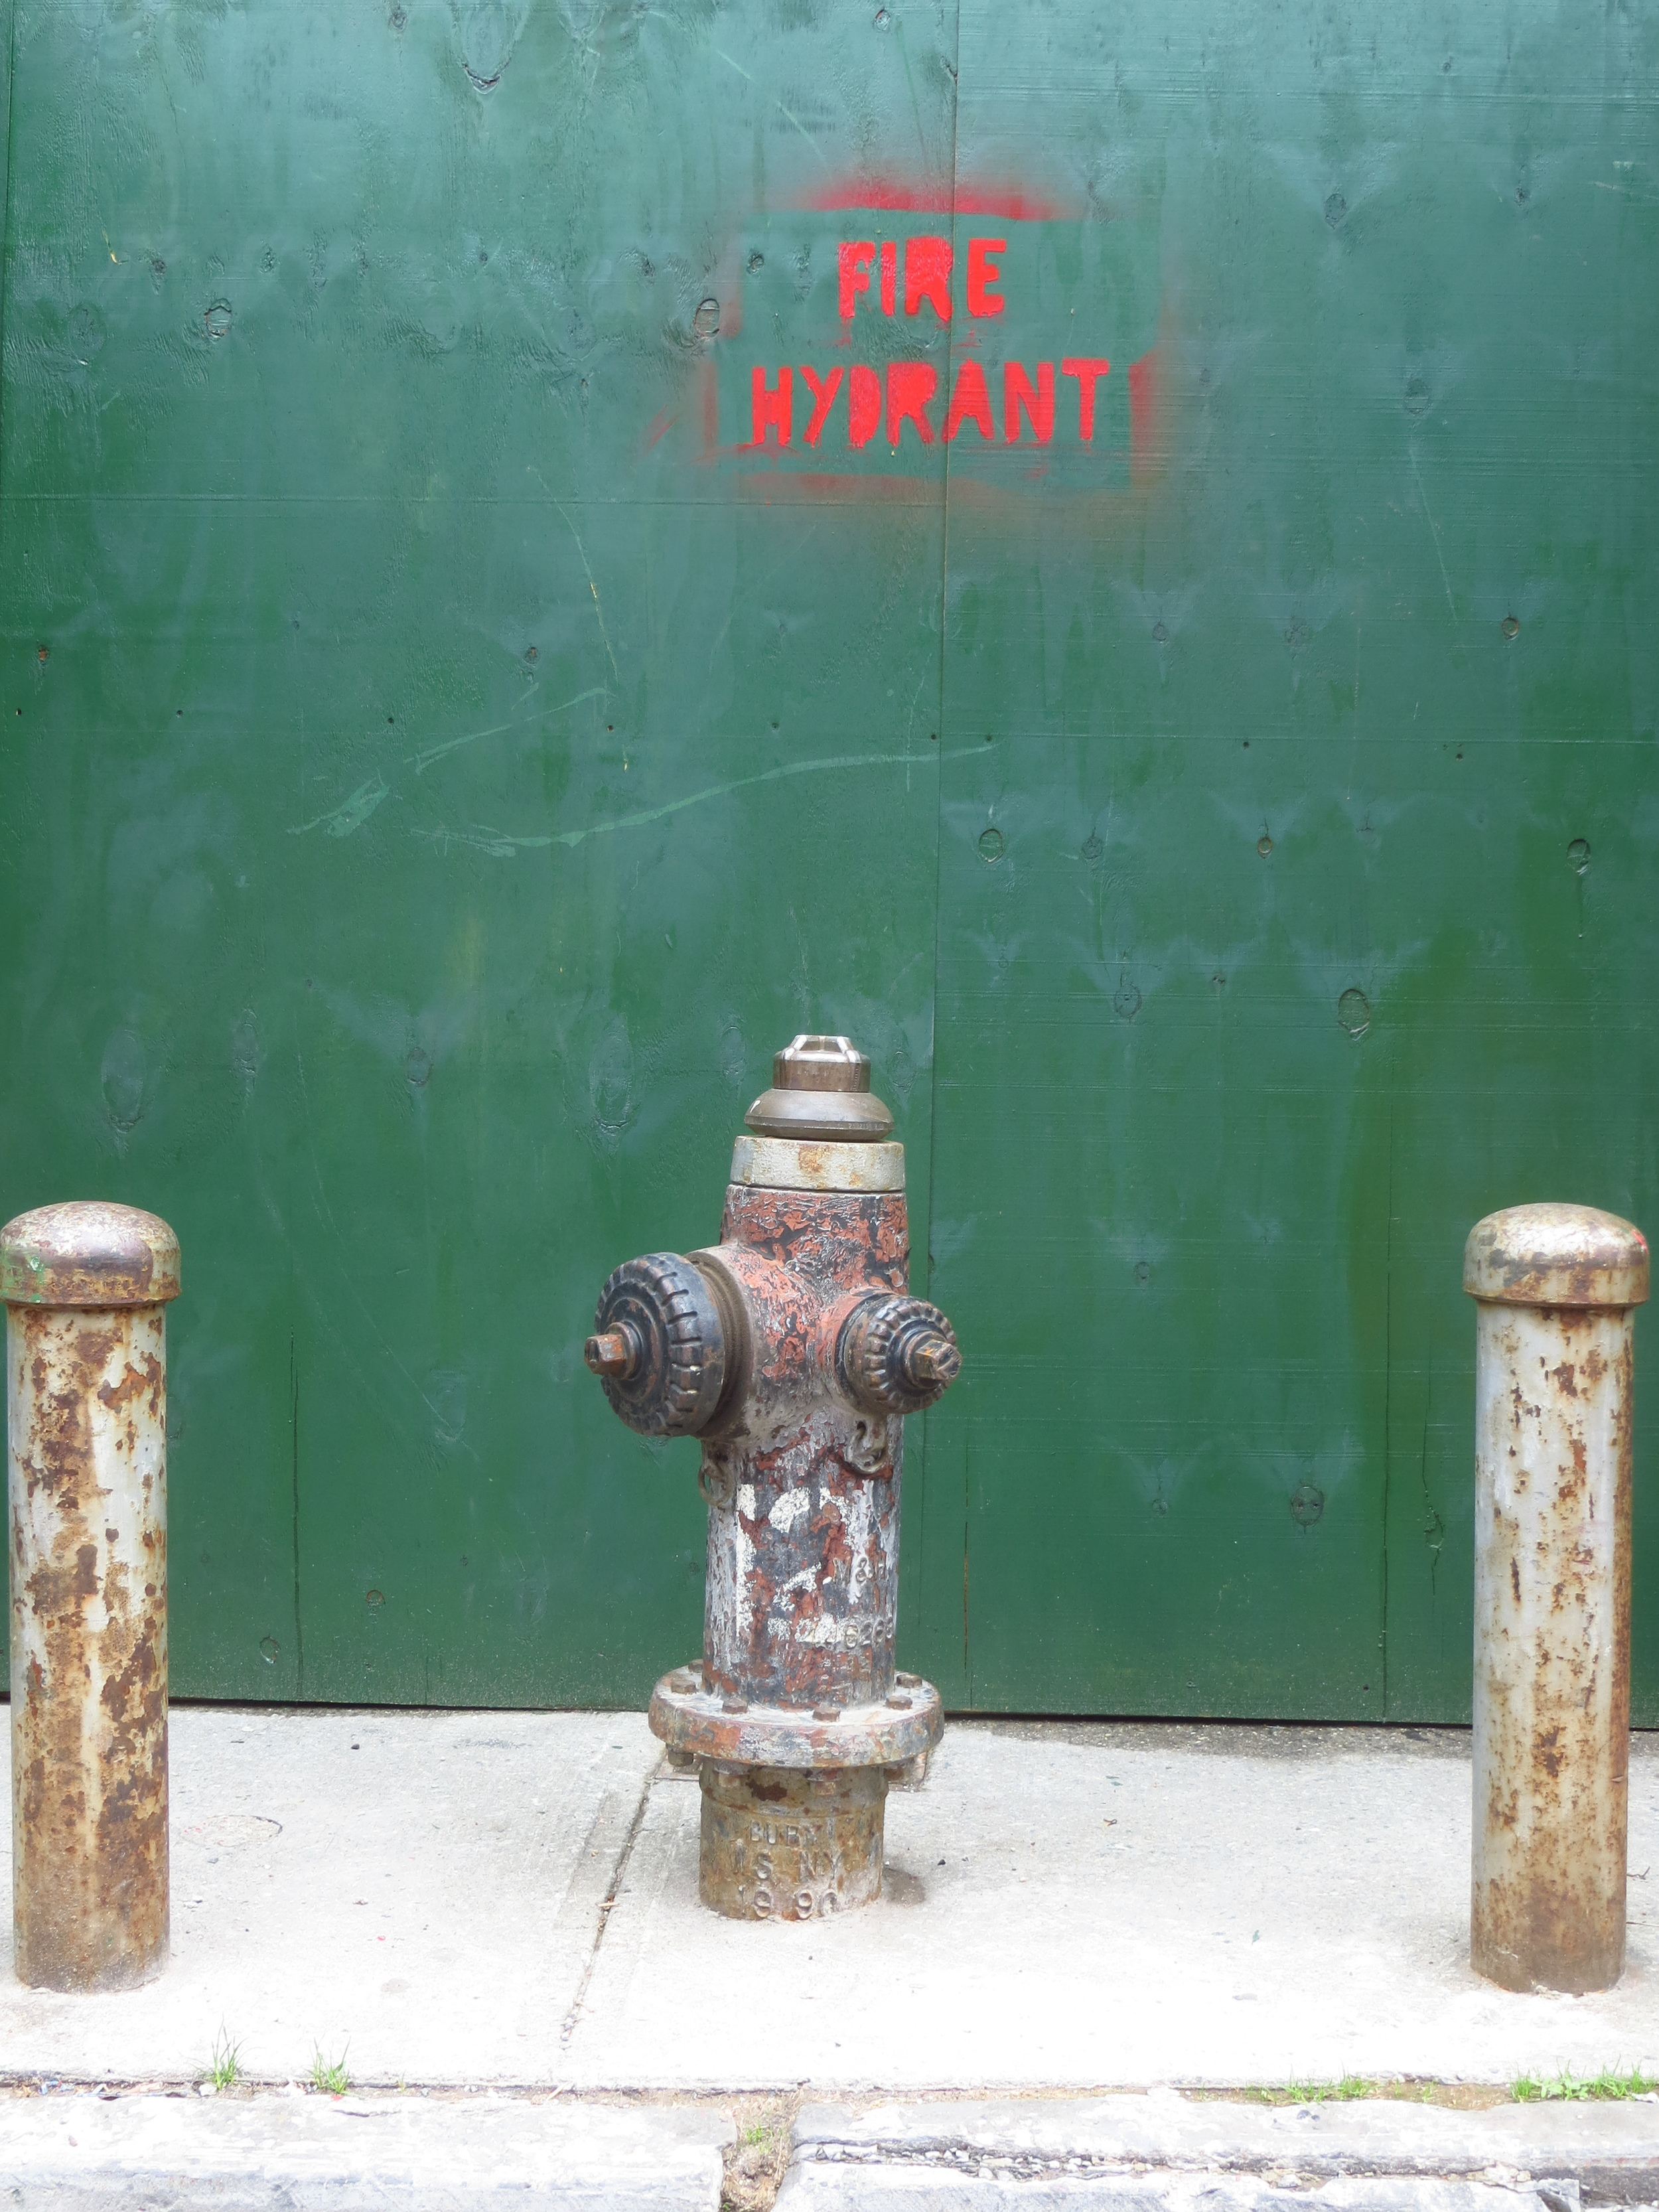 This is a picture of a fire hydrant